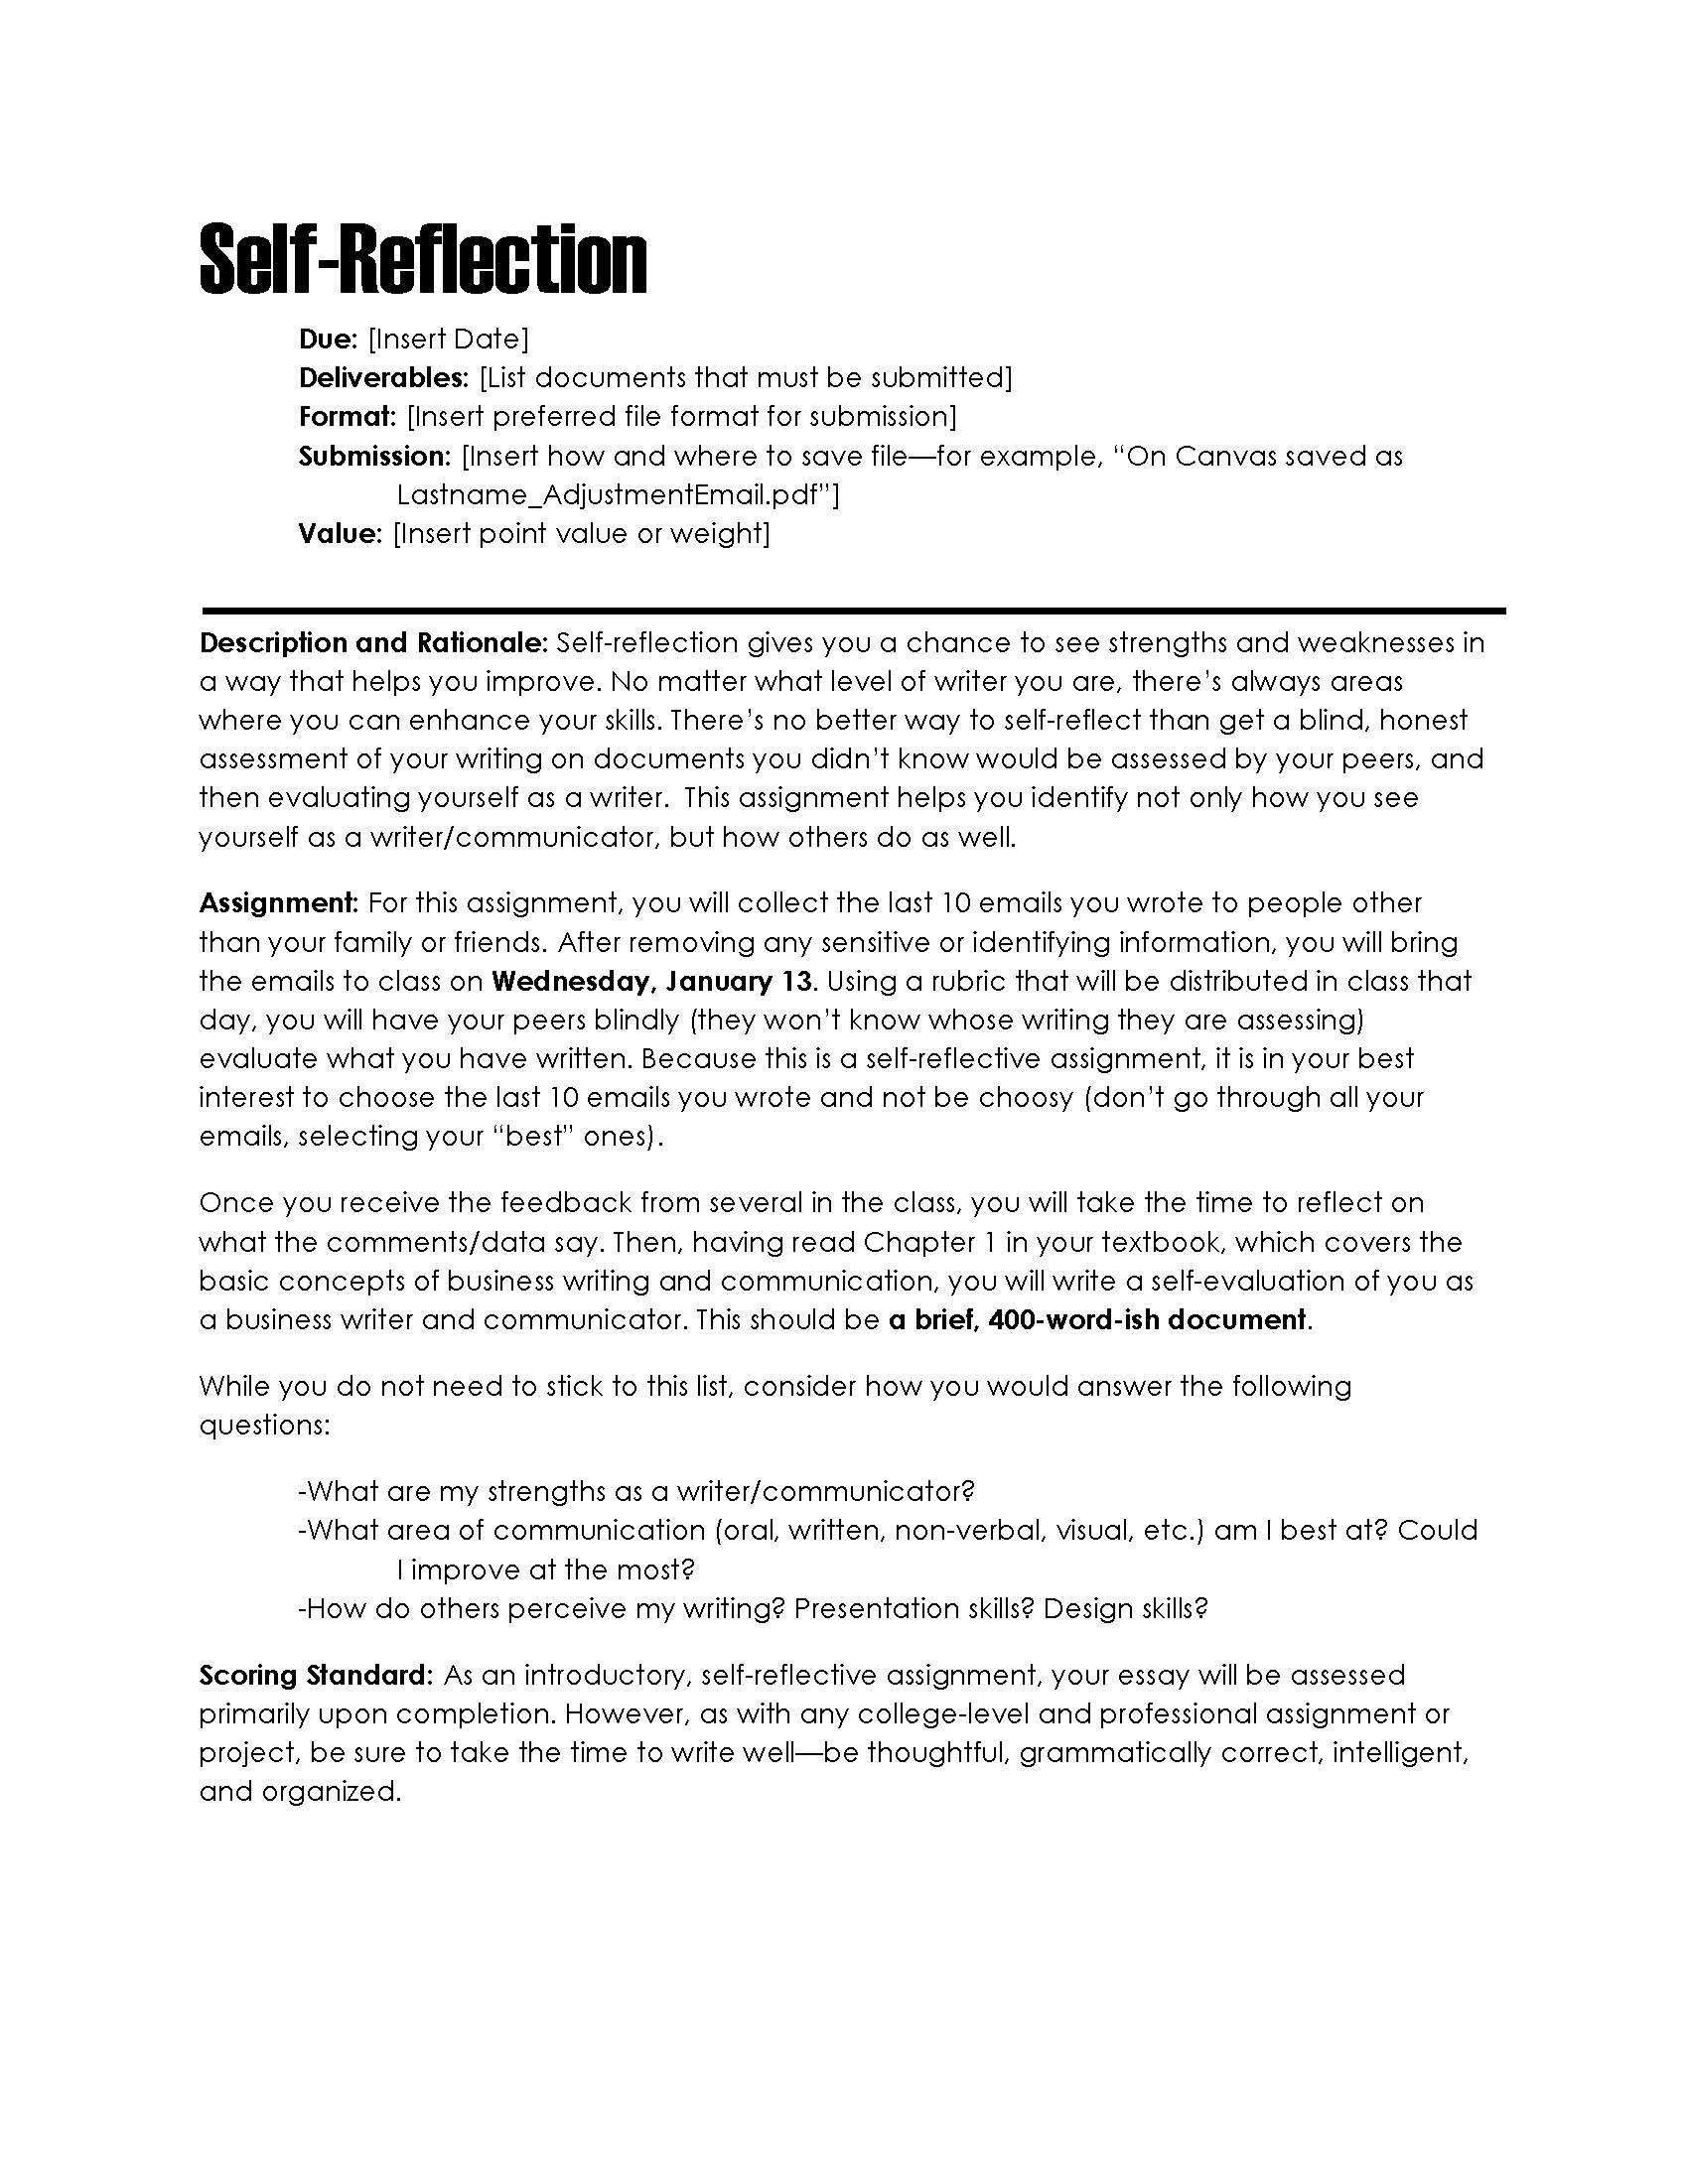 sample self reflection essay